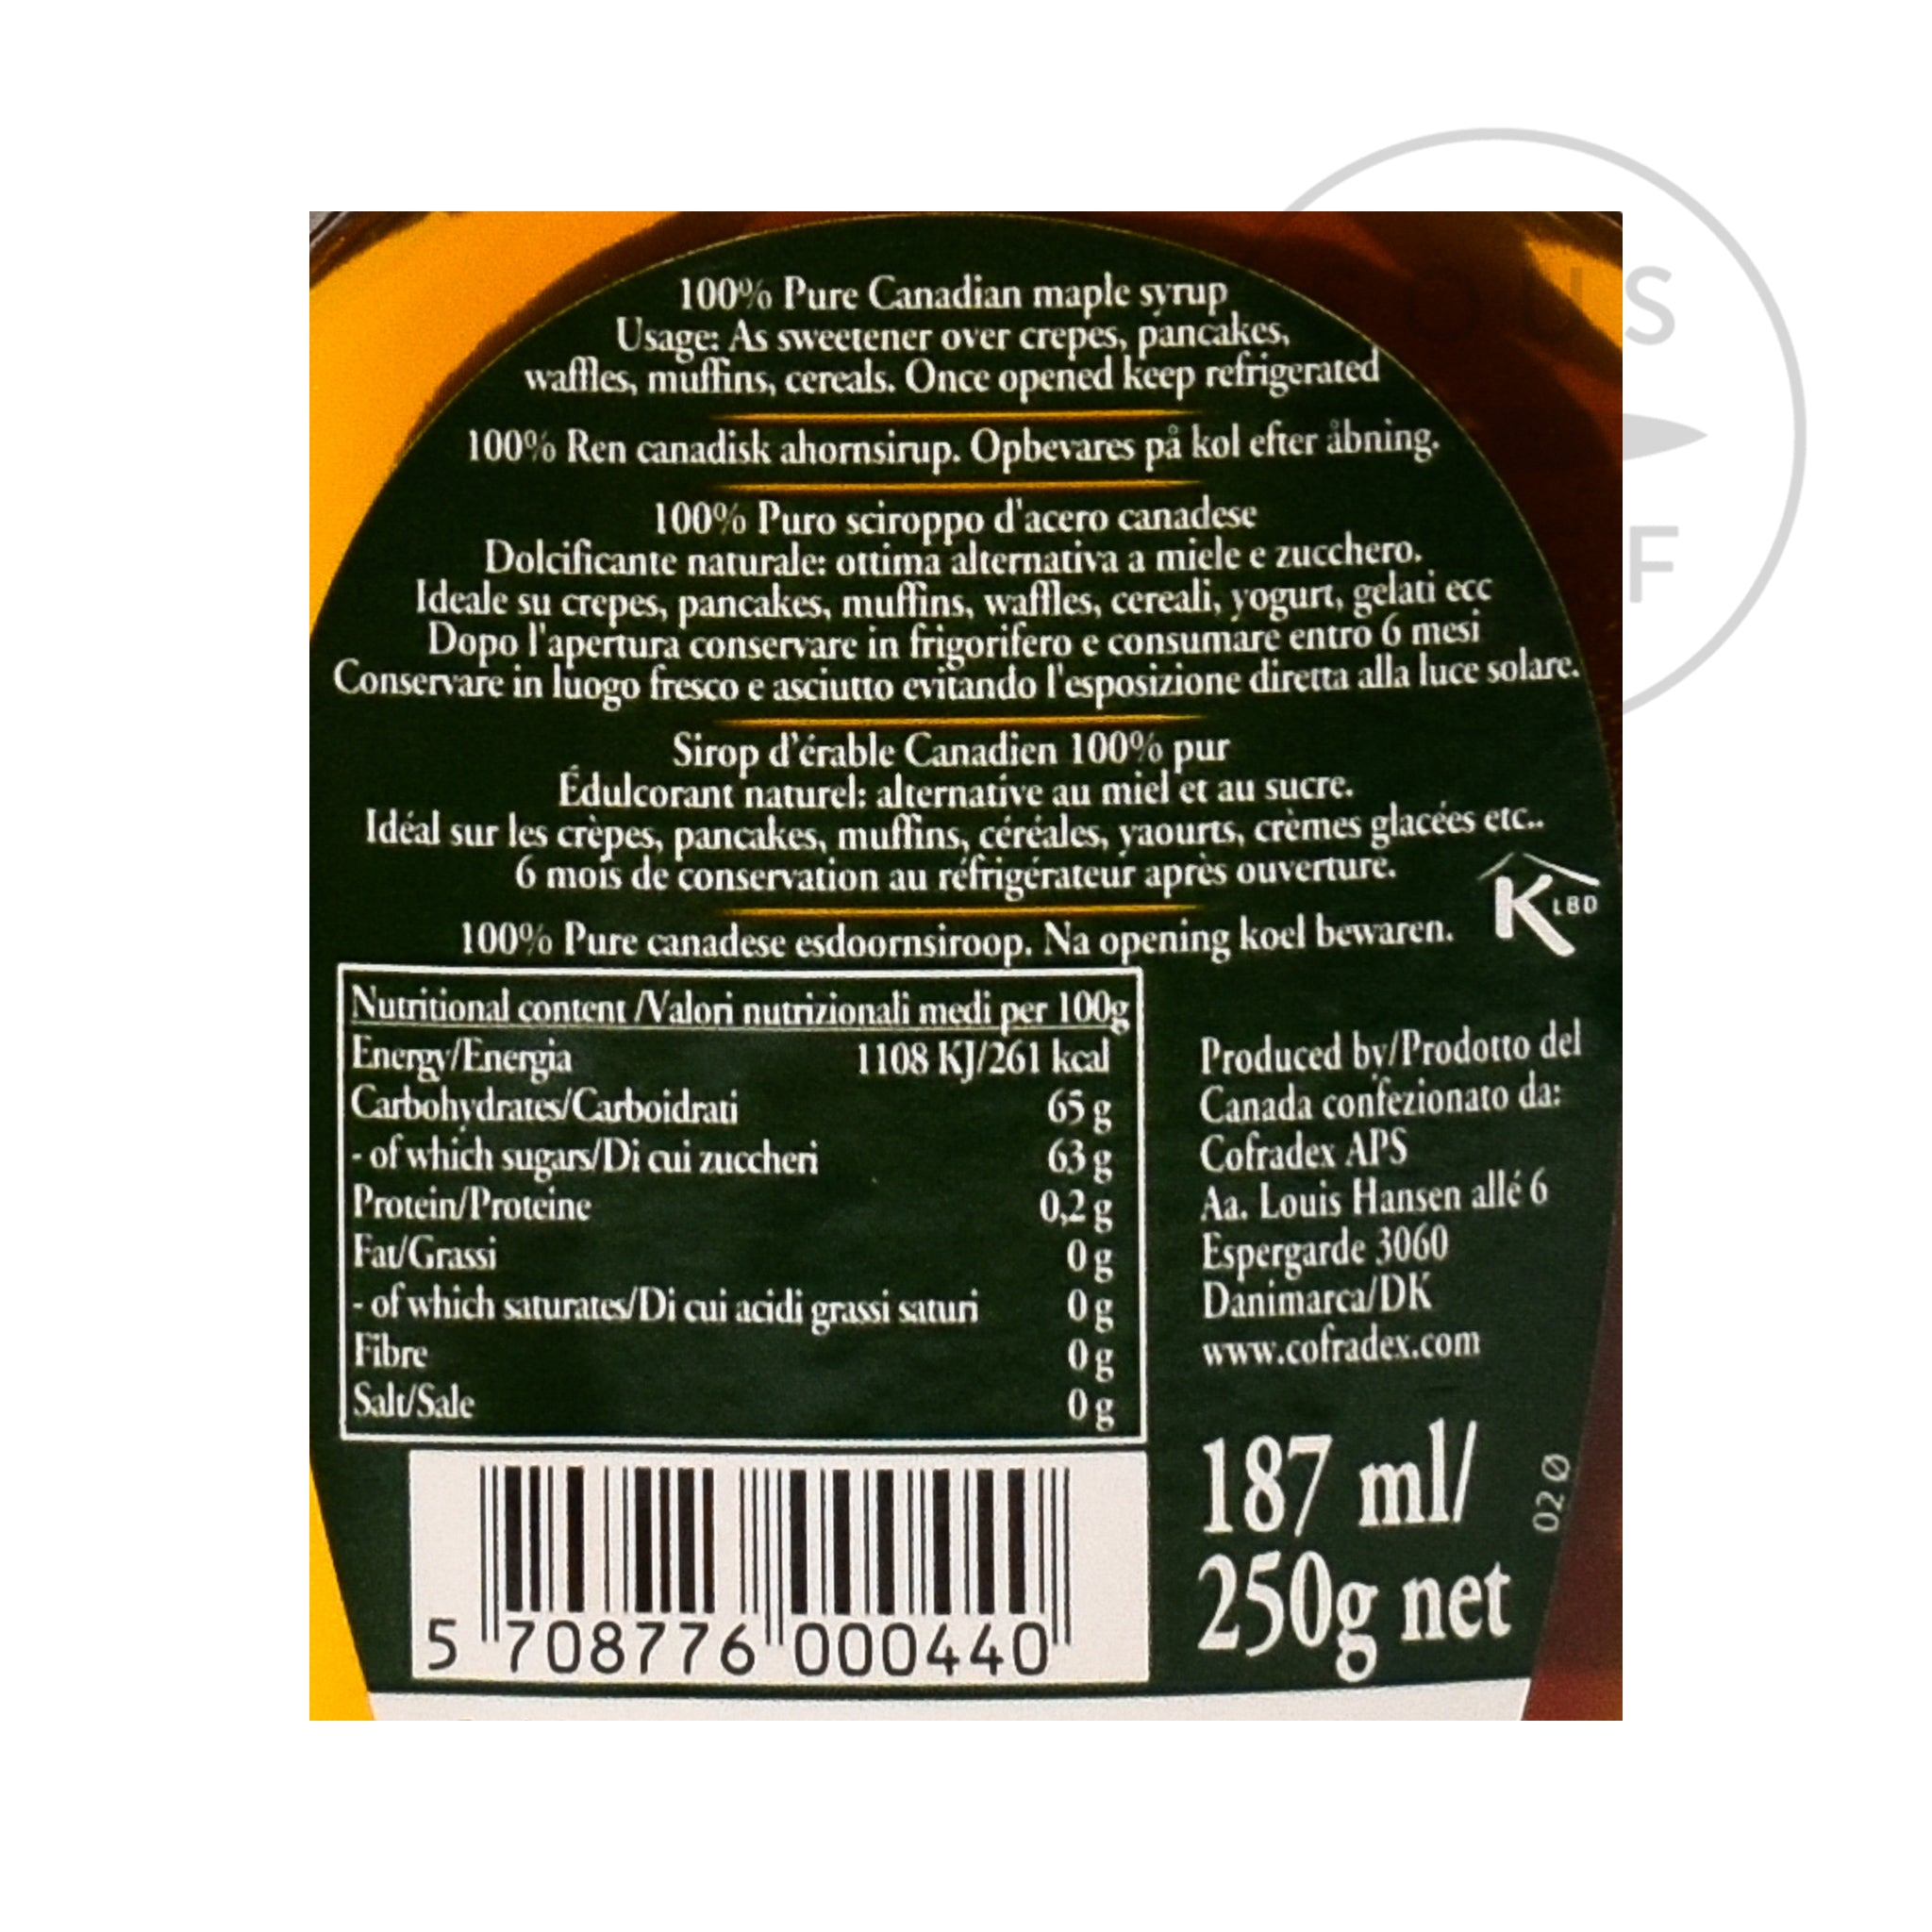 Pure Maple Syrup 187ml nutritional information ingredients